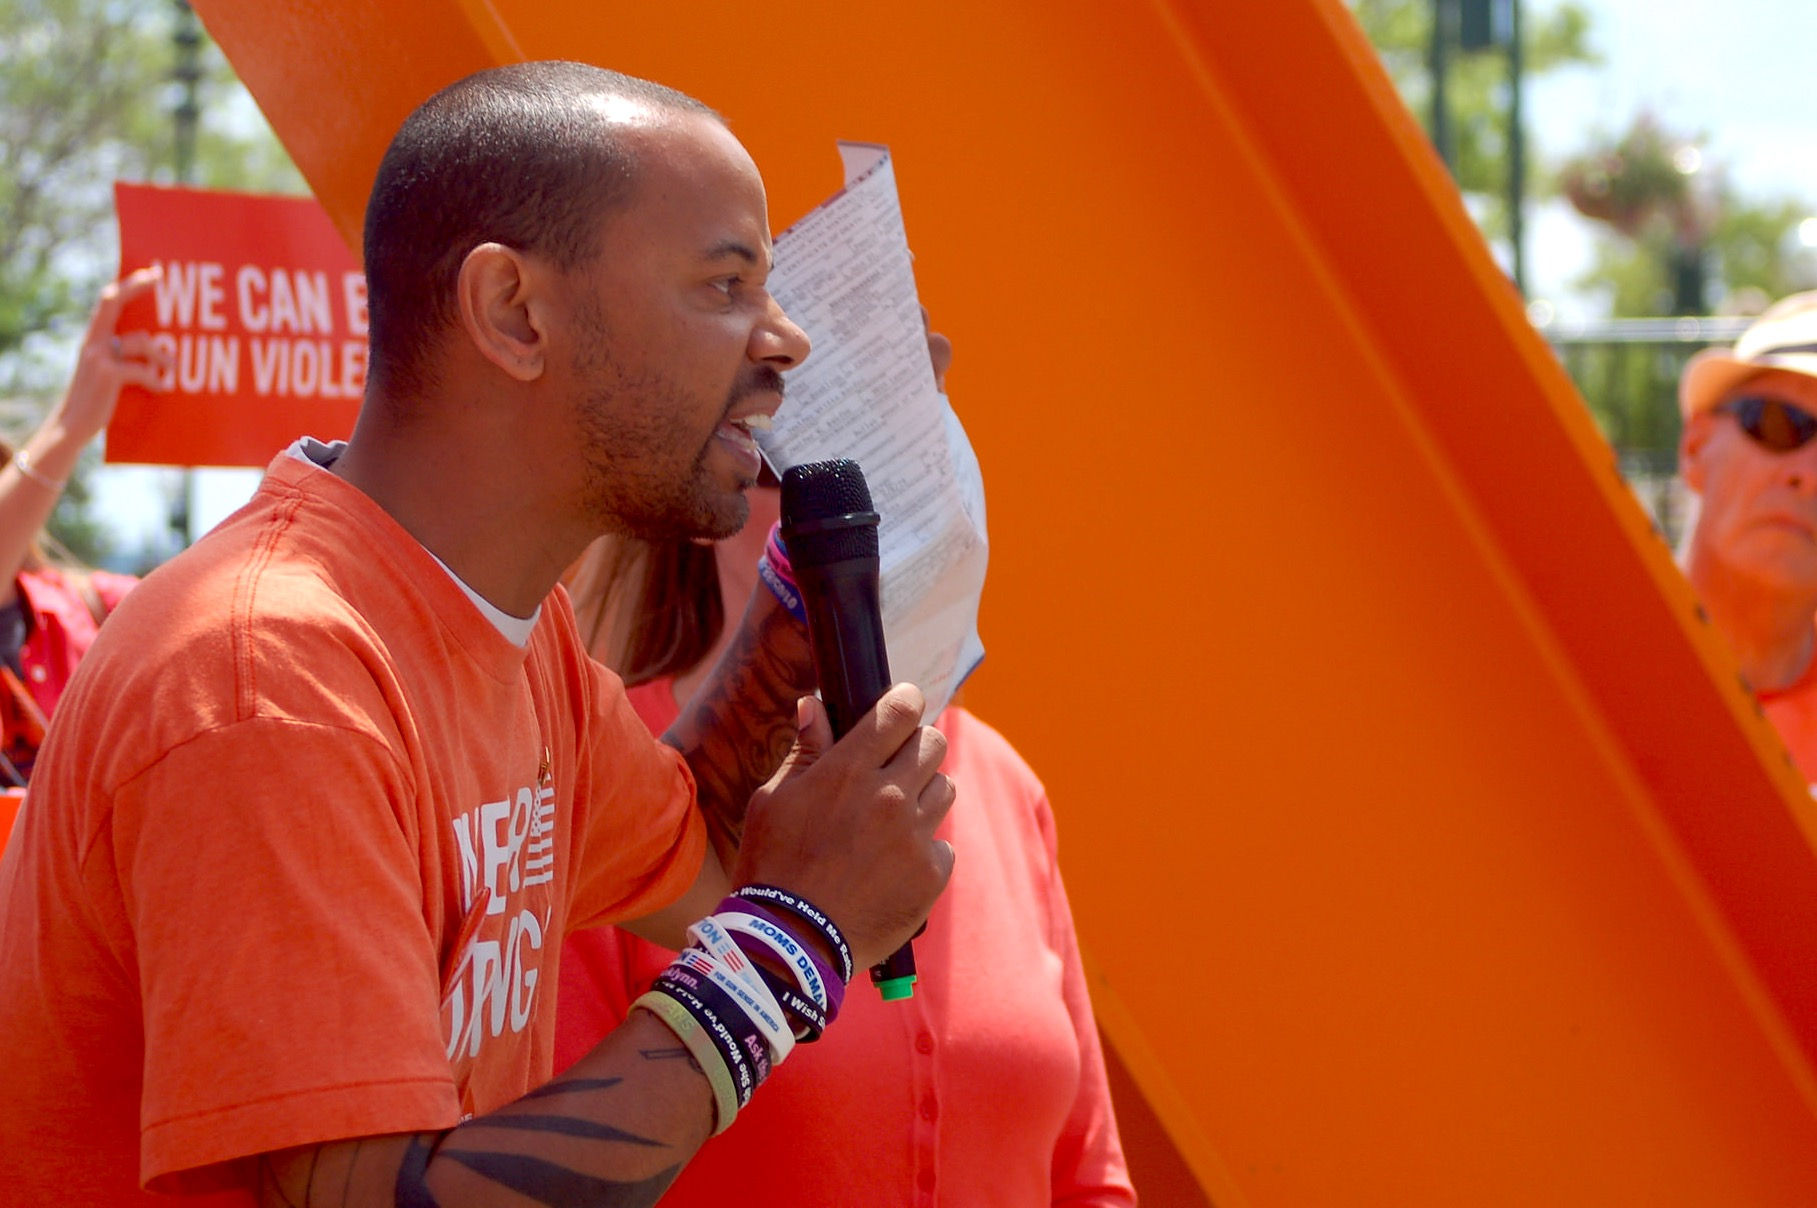 Khary Penebaker, a candidate for U.S. Congress, holds his mother's death certificate as he tells a crowd at a gun violence awareness rally about her suicide in 1979. (Photo by Brendan O'Brien)